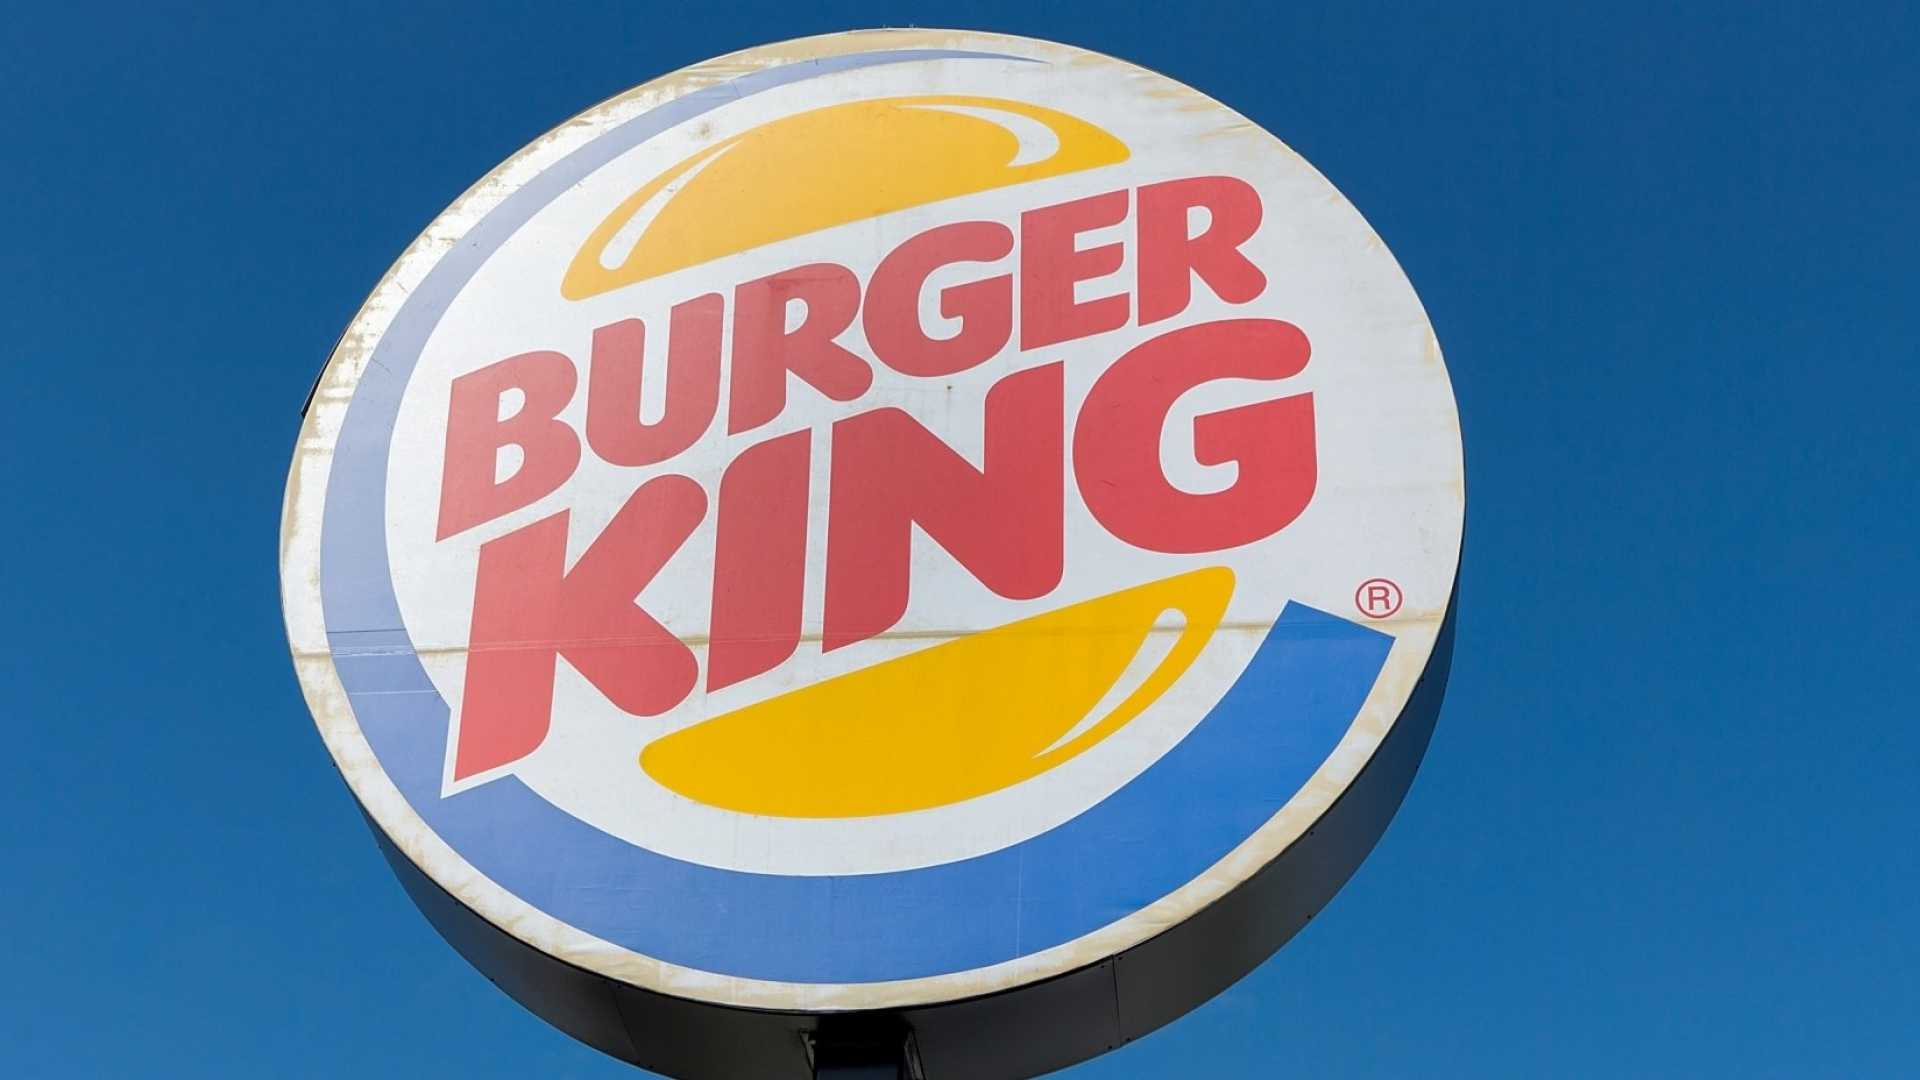 Burger King Settles Class Action Suit Over Higher BOGO Pricing for Its Croissan'wich